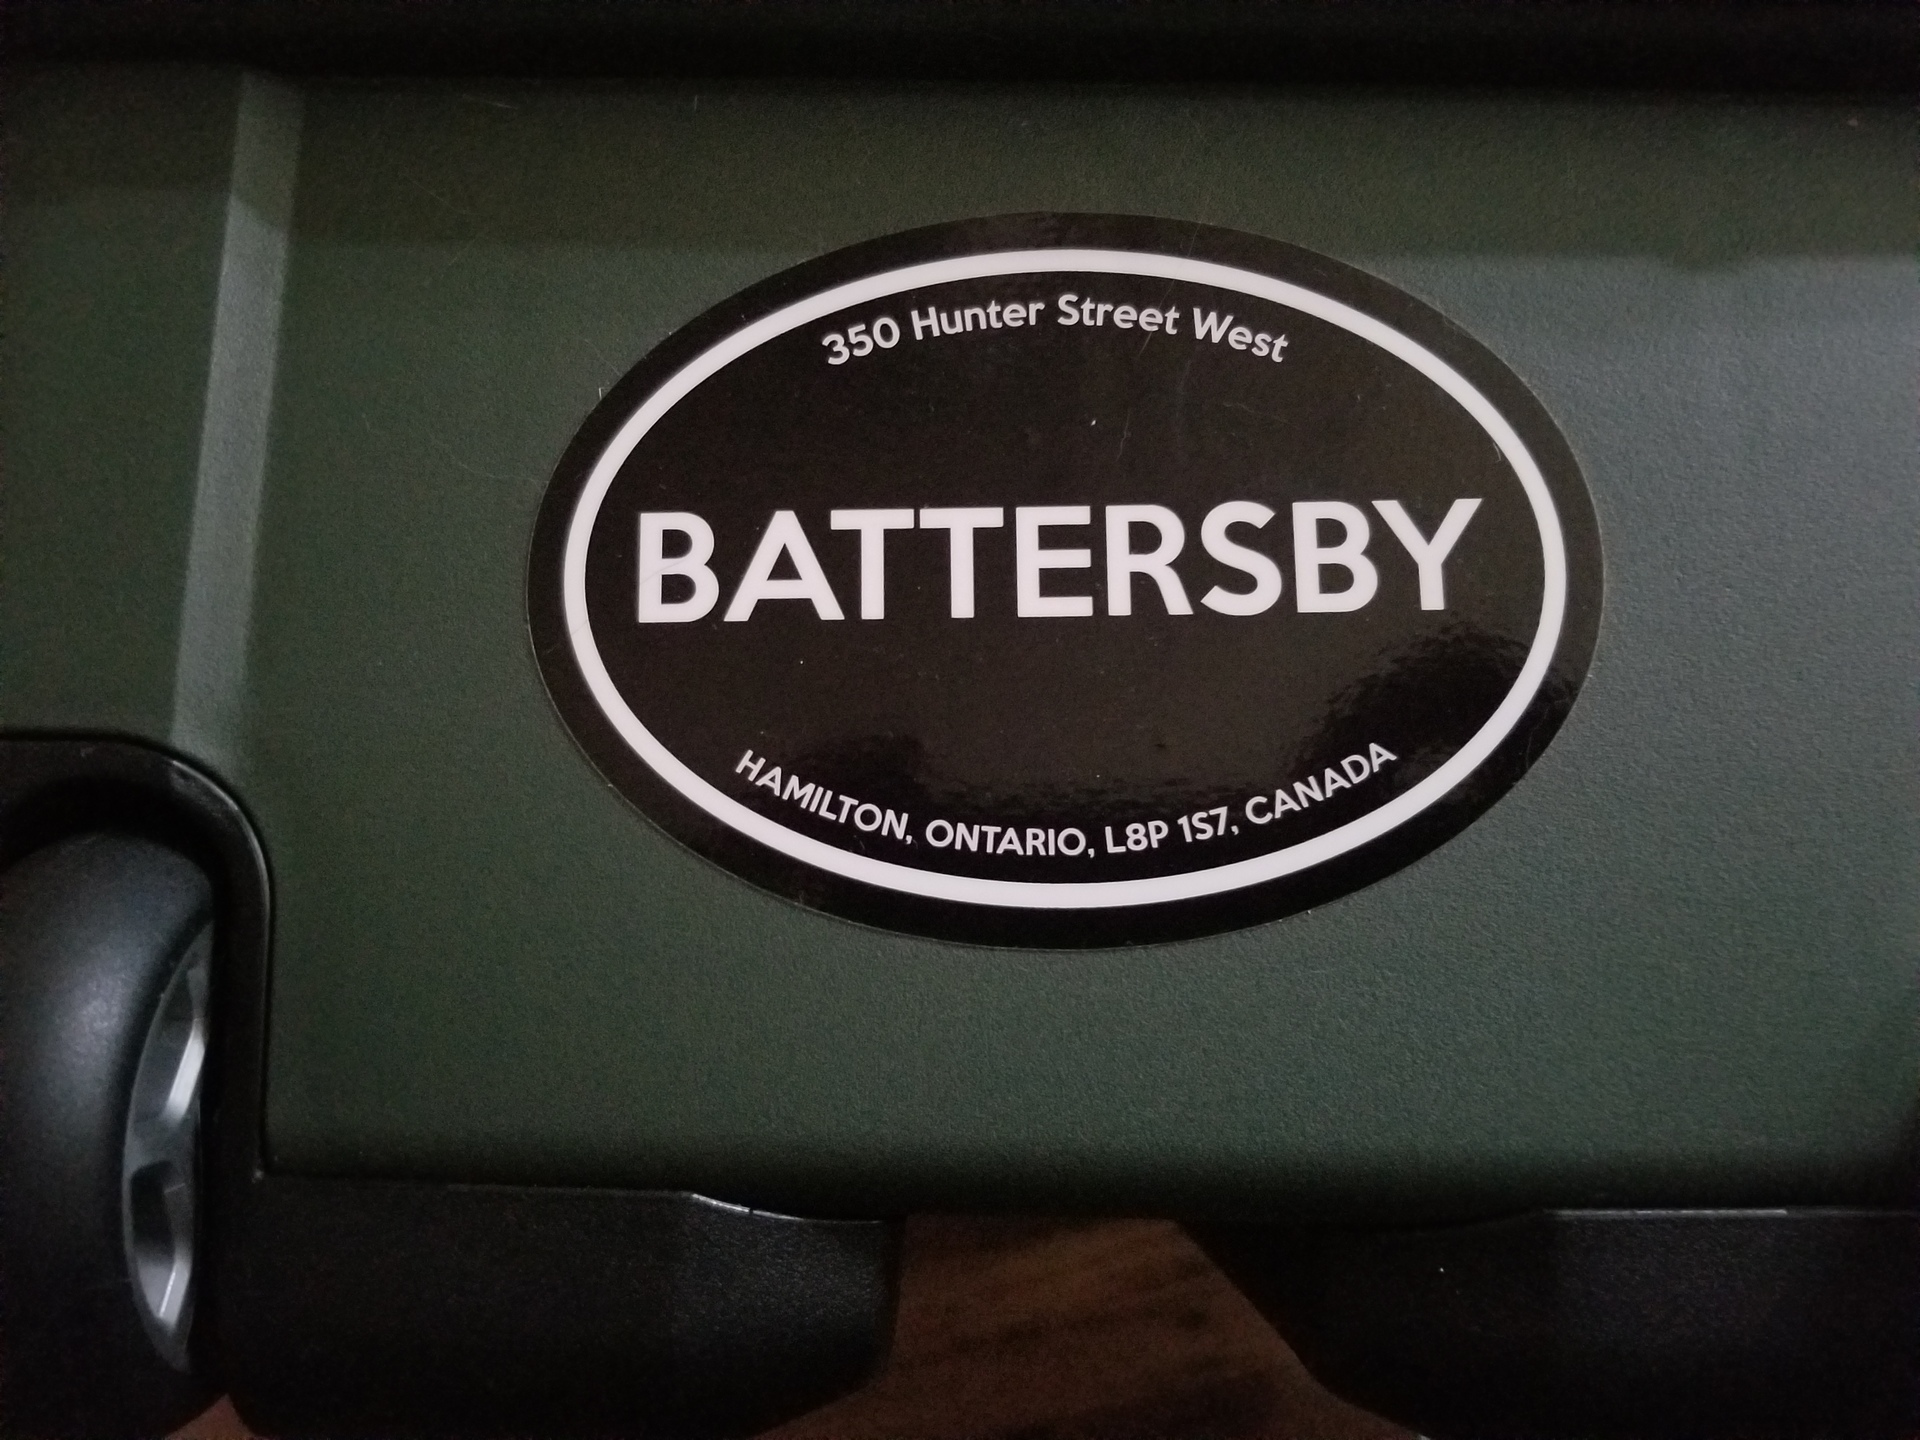 Shane Drew's photograph of their Custom Oval Stickers with Text